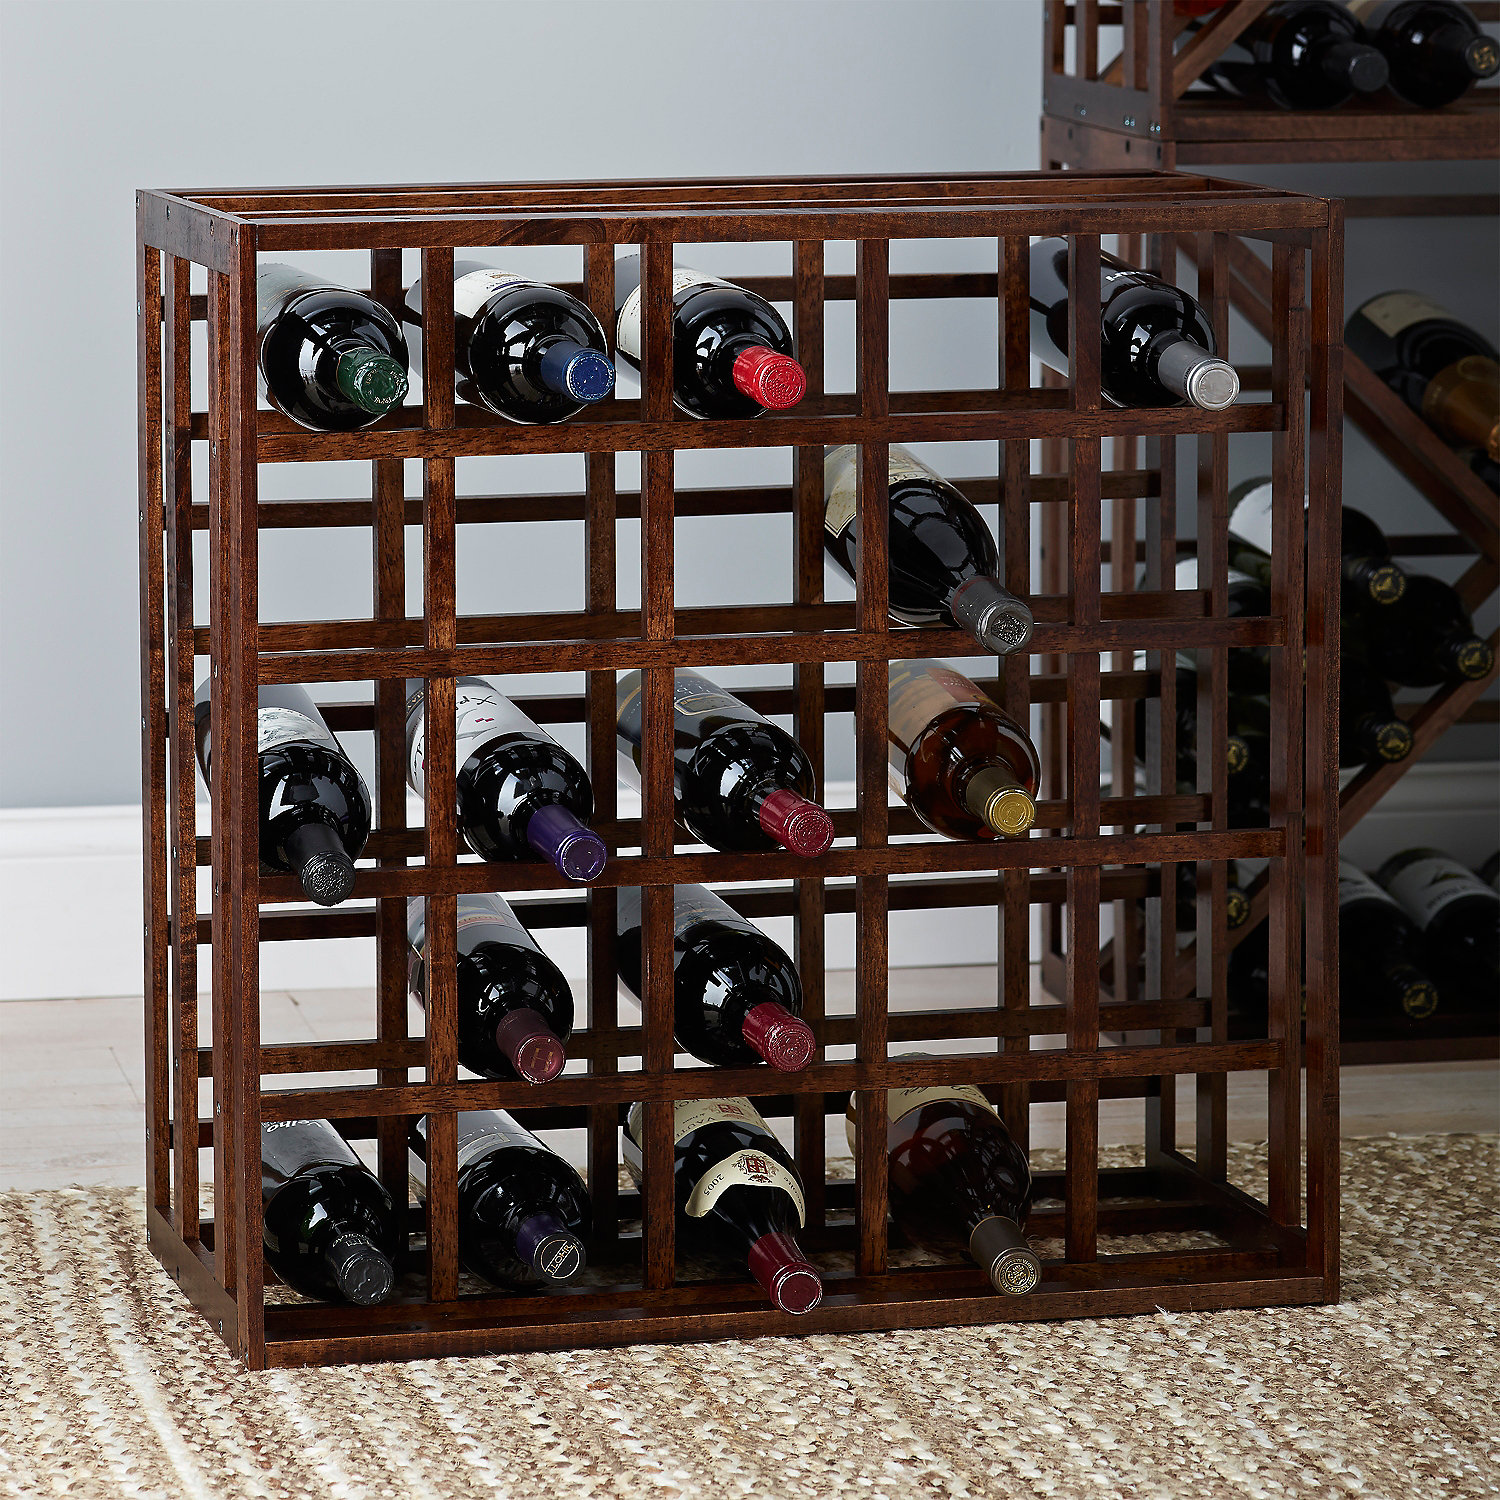 25 Bottle Wine Rack Preparing Zoom